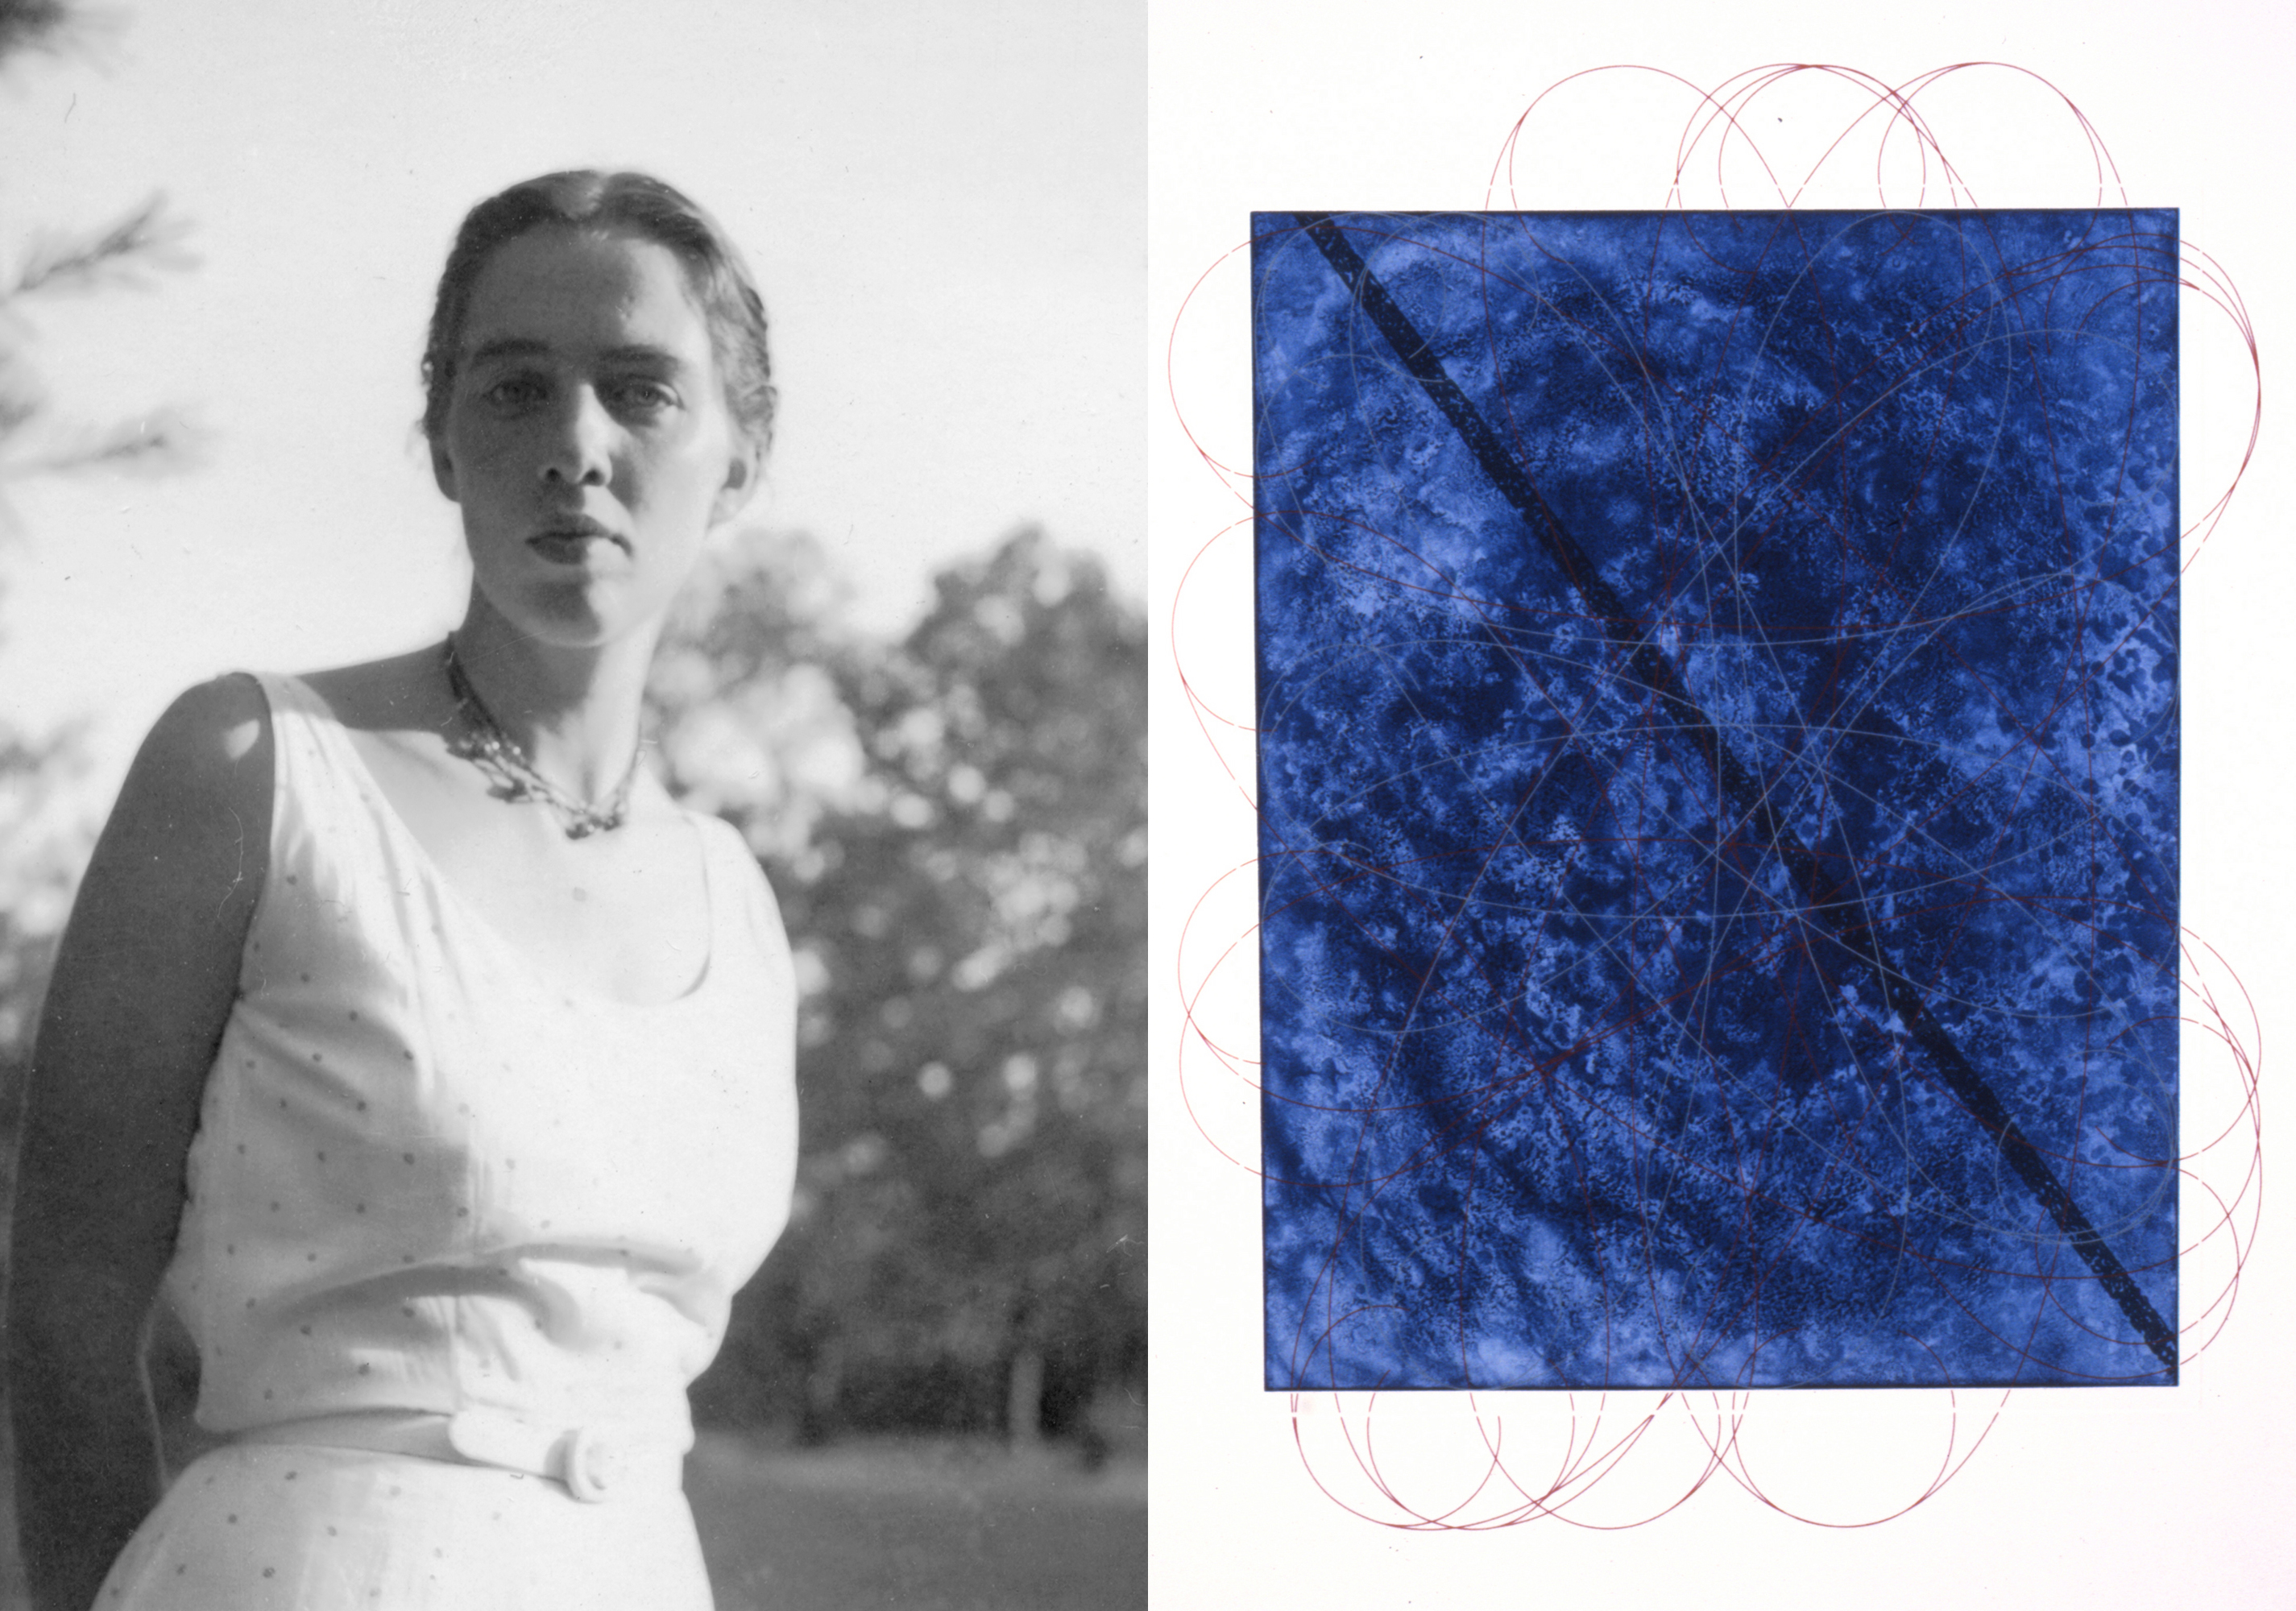 Left image is of a young Dorothea Rockburne in a sundress, photographed in black and white from the 1950s. To the right is an image of her work Blue Brane which features an upright deep blue rectangle overlaid with a layer of interweaving orbital marks in red ink.